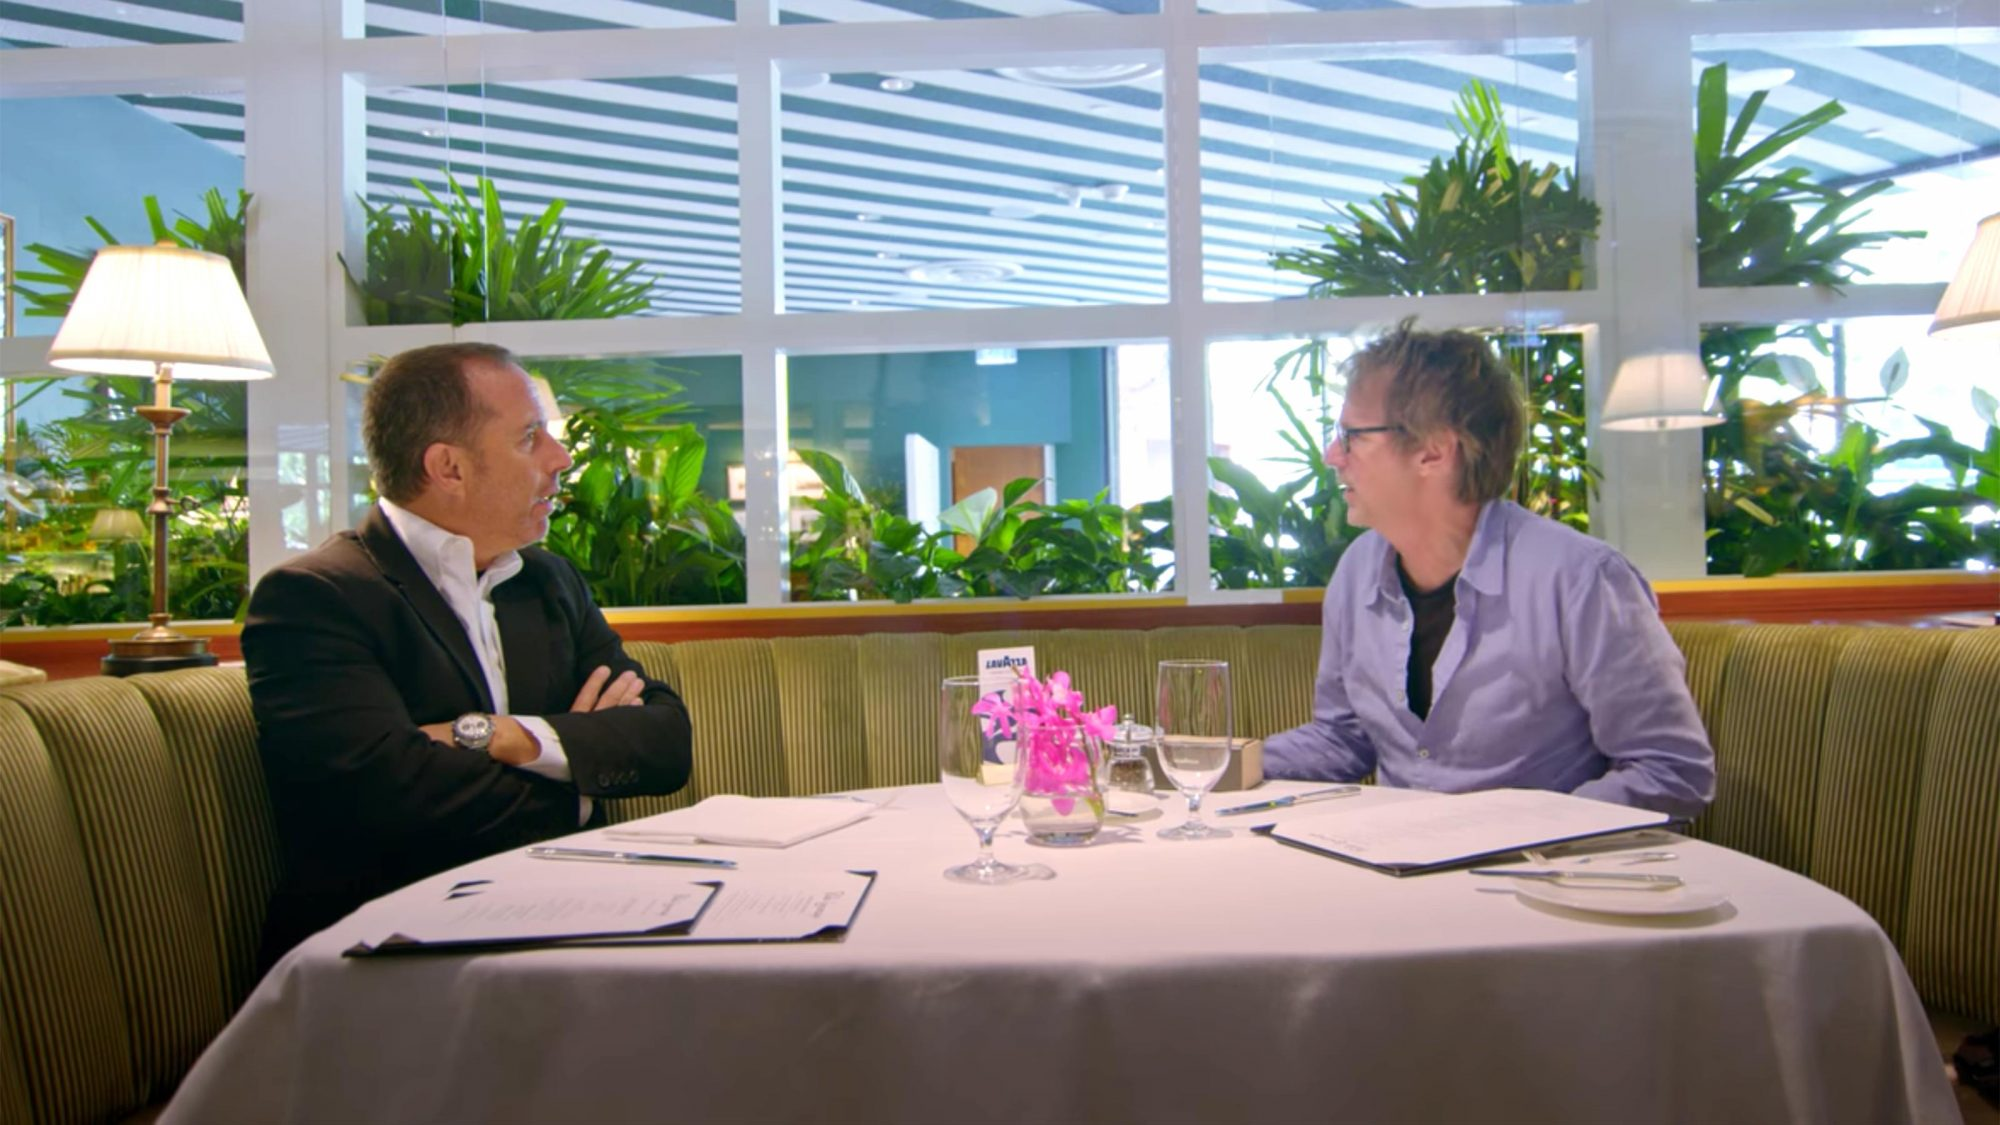 Comedians-in-Cars-Getting-Coffee-S5-E6